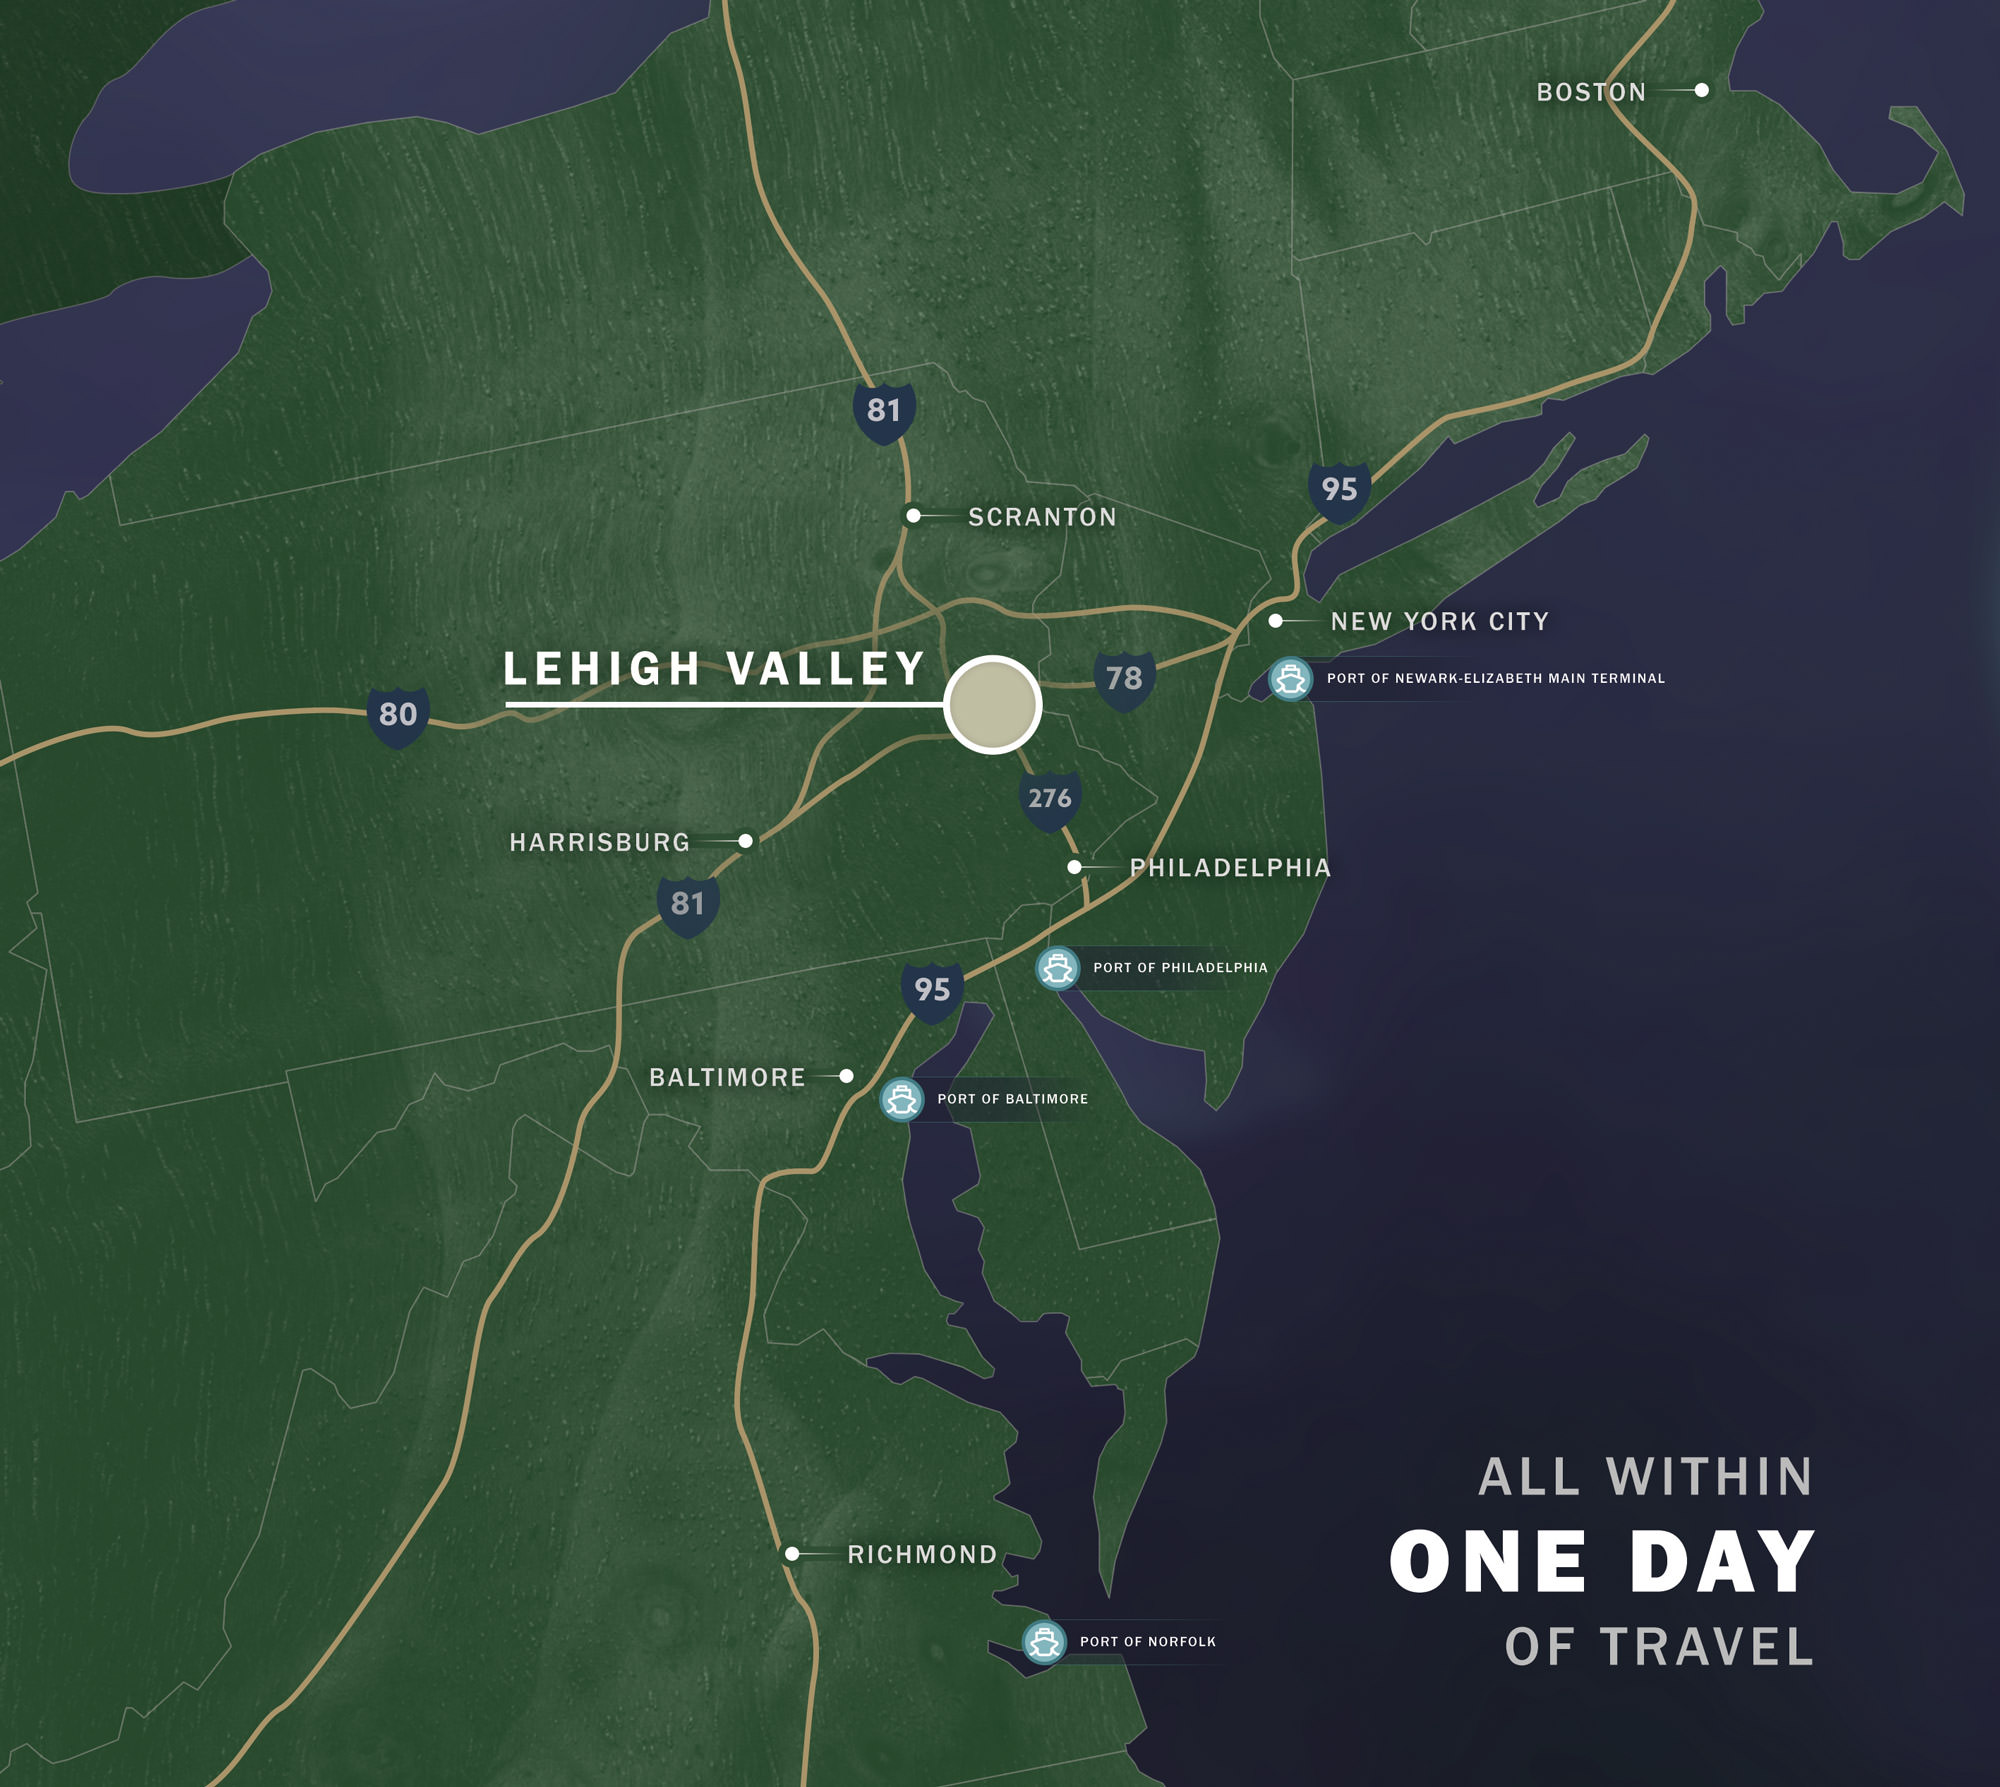 Lehigh Valley - All in one days drive